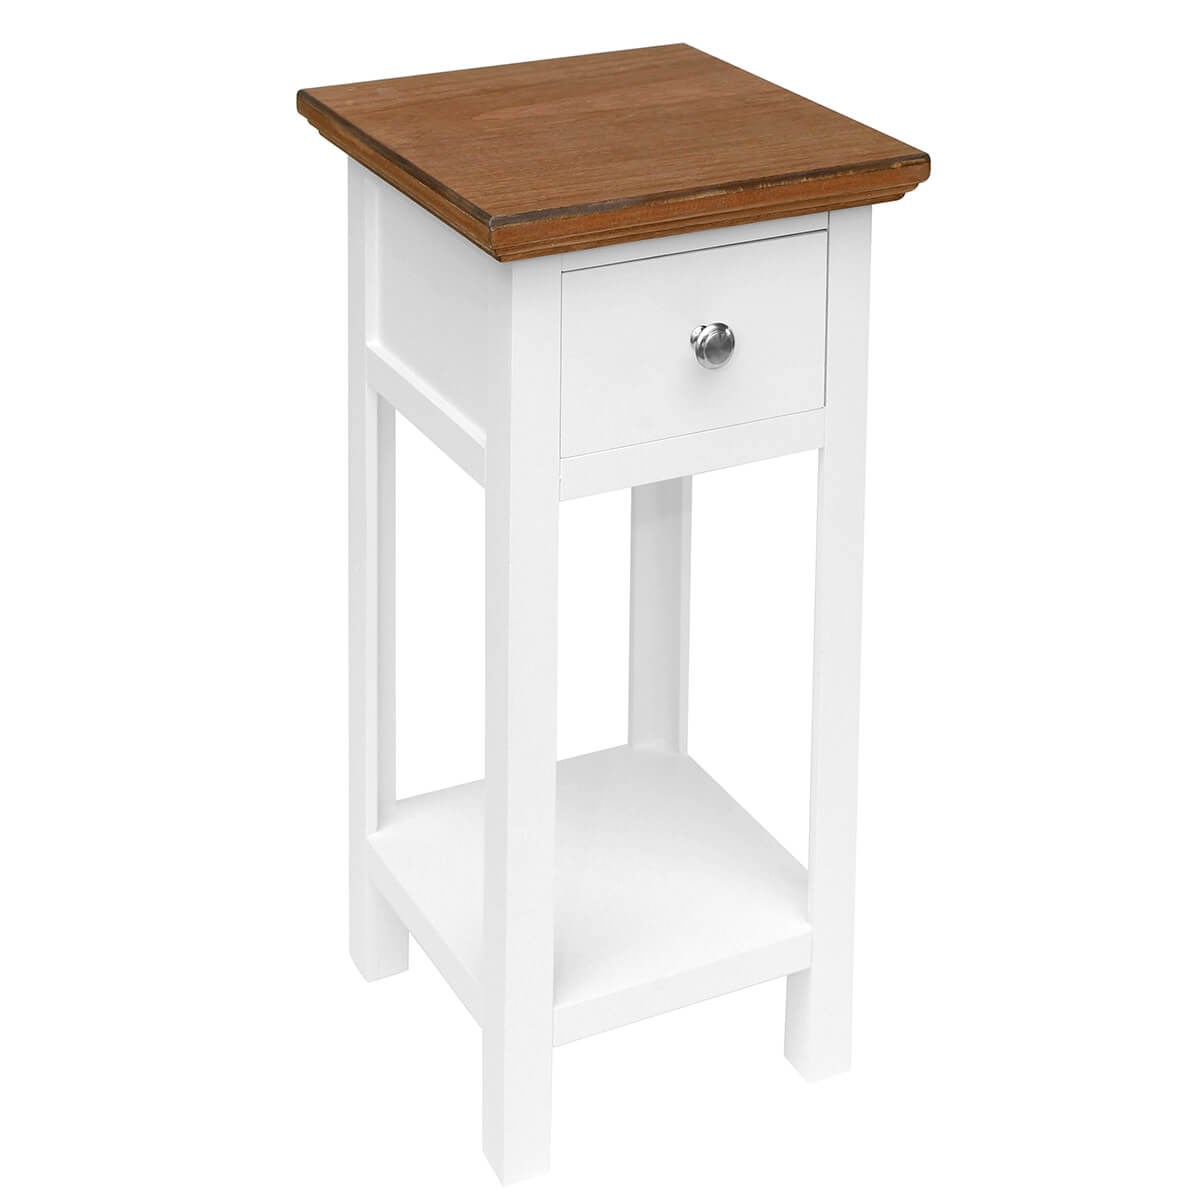 Best Bedside Table White Bedside Table With Wooden Top Savvysurf Co Uk